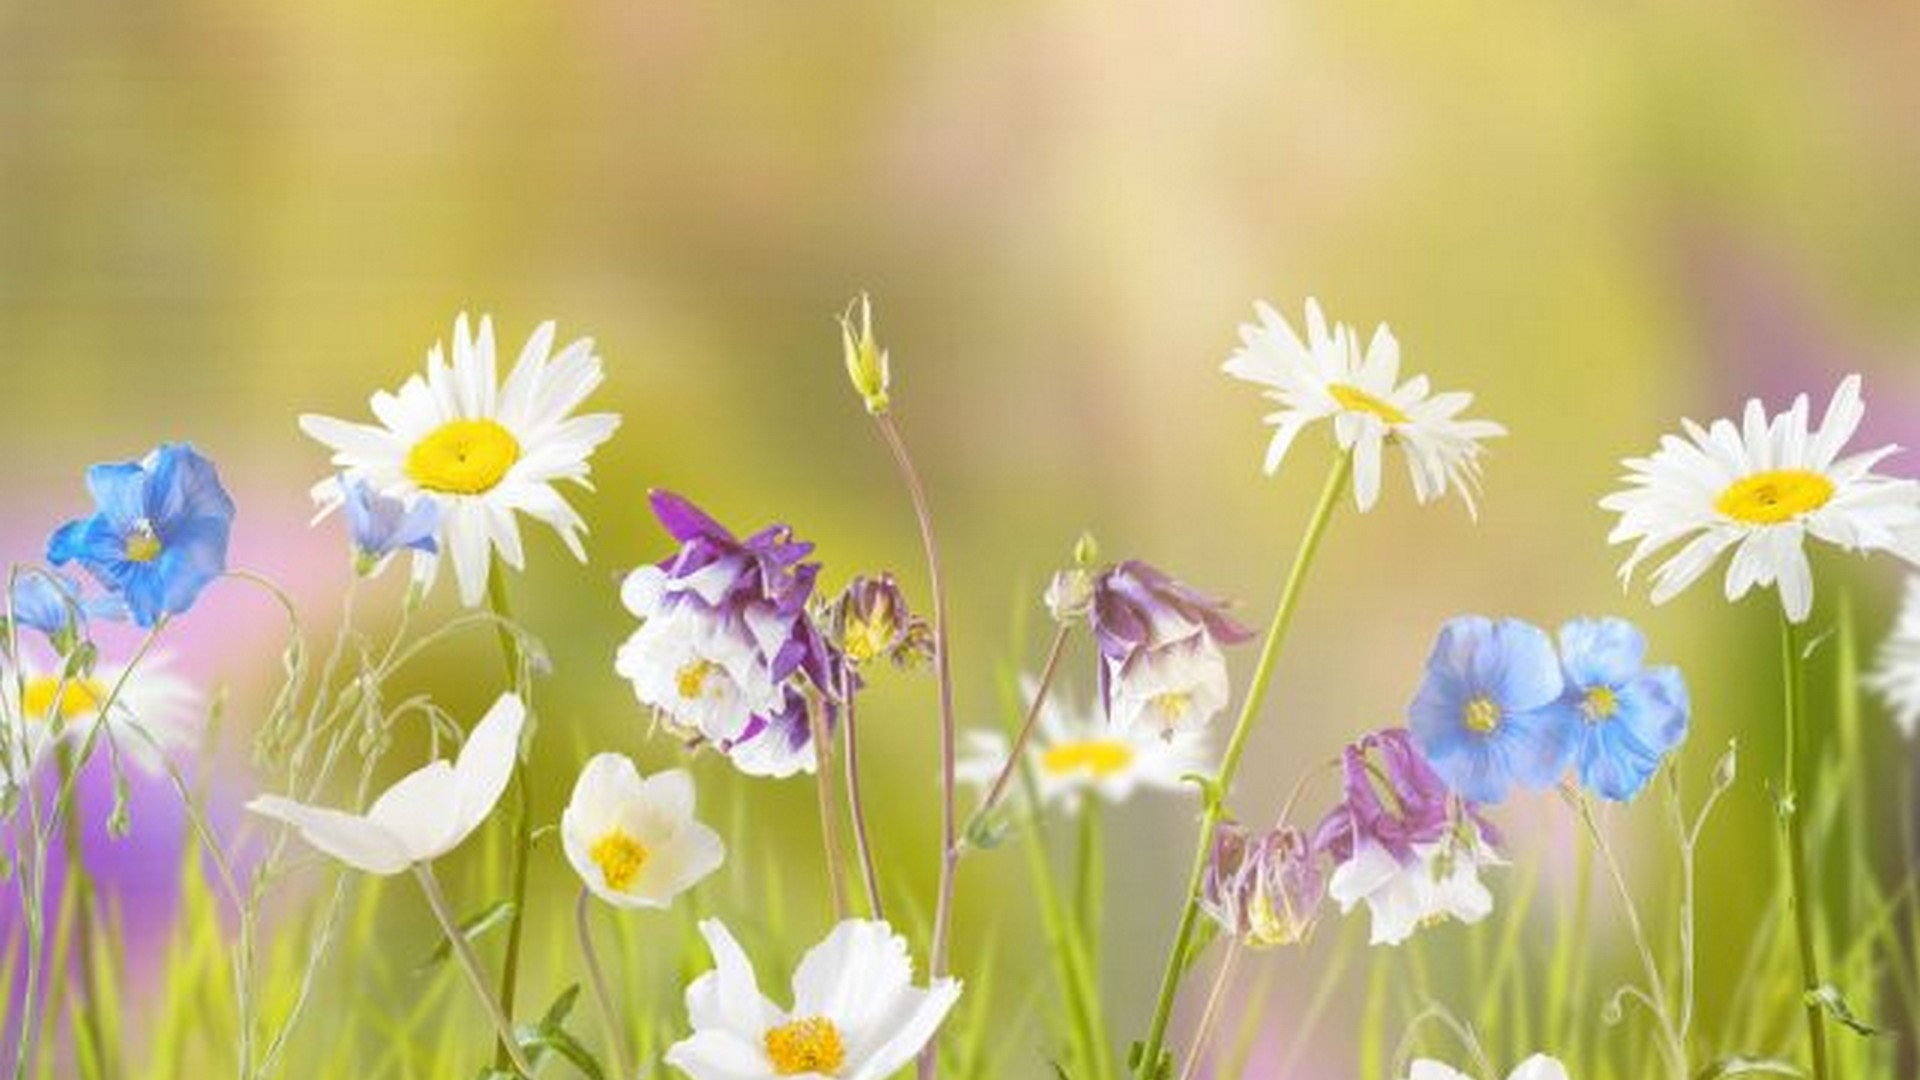 Cute Wallpapers For Springtime Early Spring Wallpaper For Desktop 2020 Cute Wallpapers